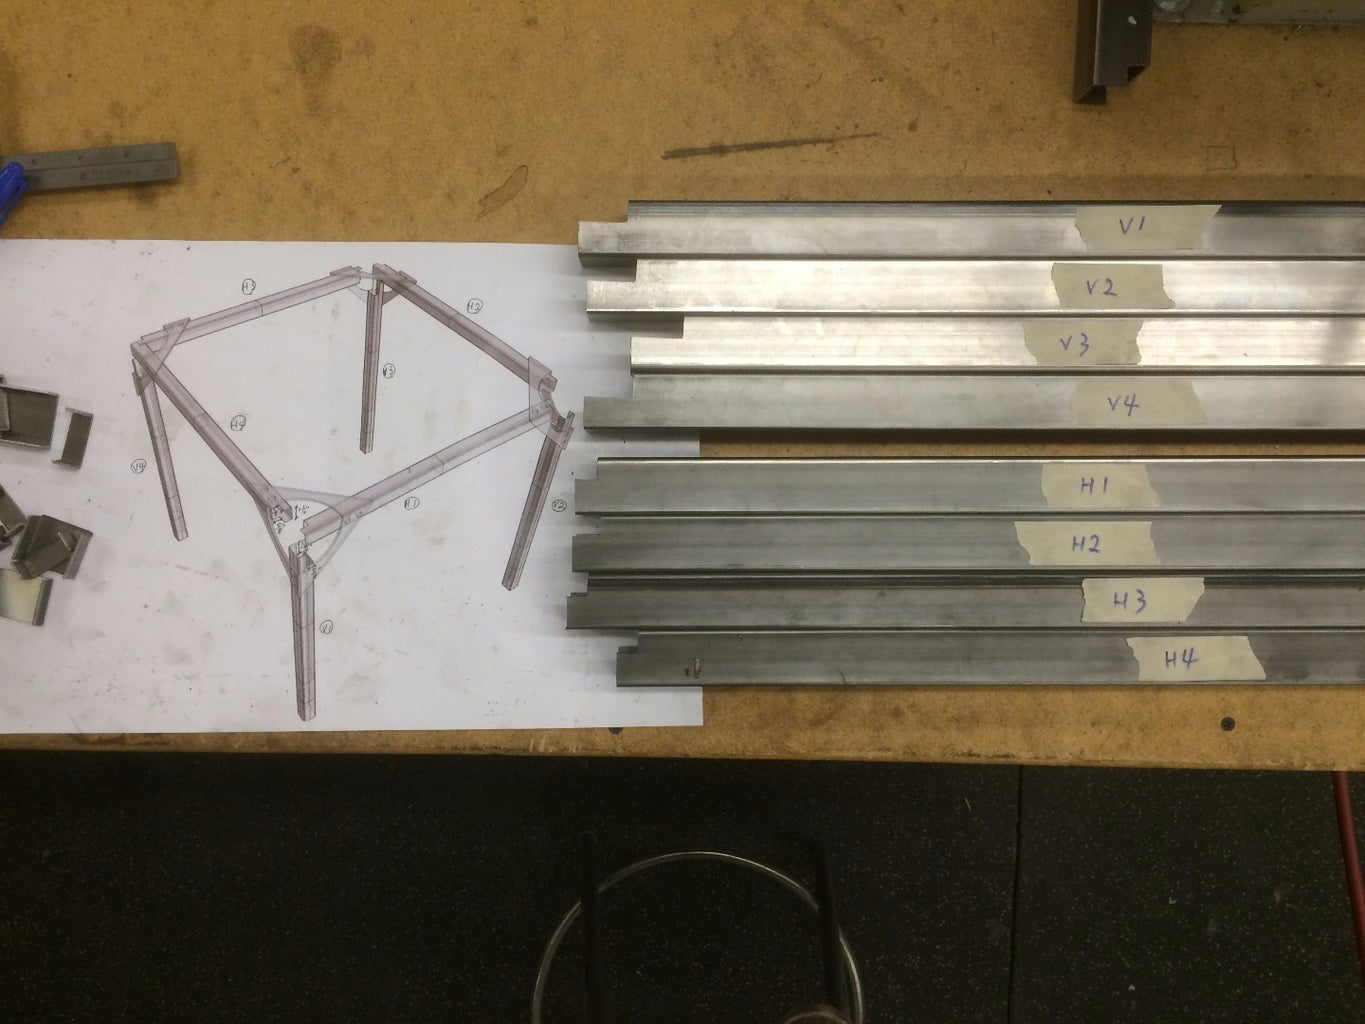 Cut and Mill Interlocking Joints on Steel Tubes